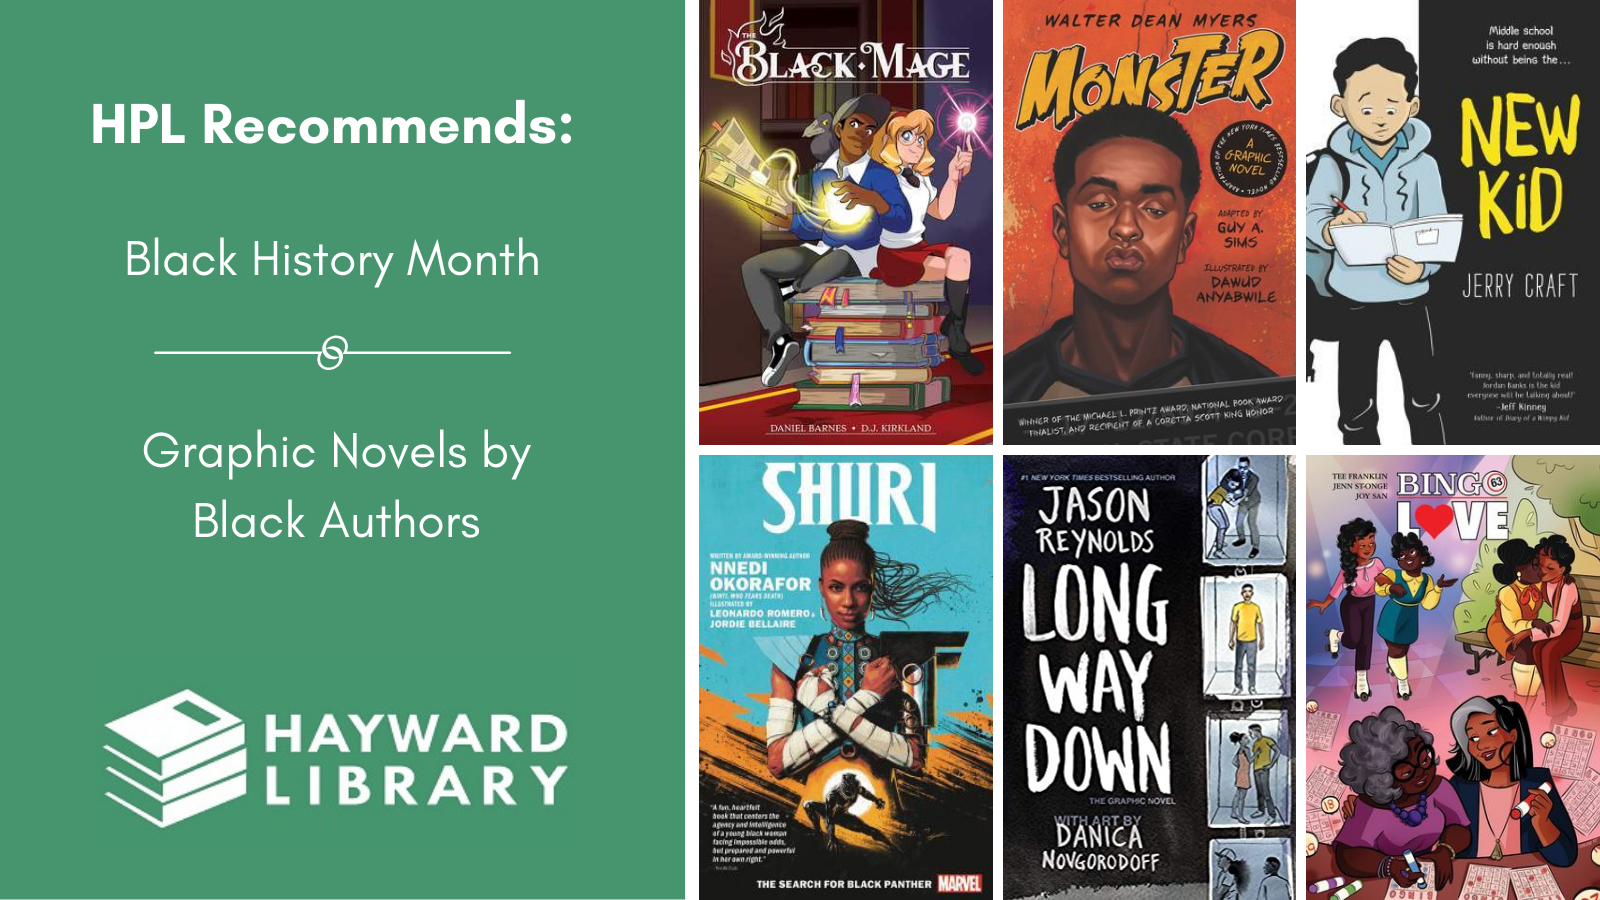 Collage of book covers with a green block on left side that says HPL Recommends, Black History Month, Graphic Novels by Black Authors in white text, with Hayward Library logo below it.